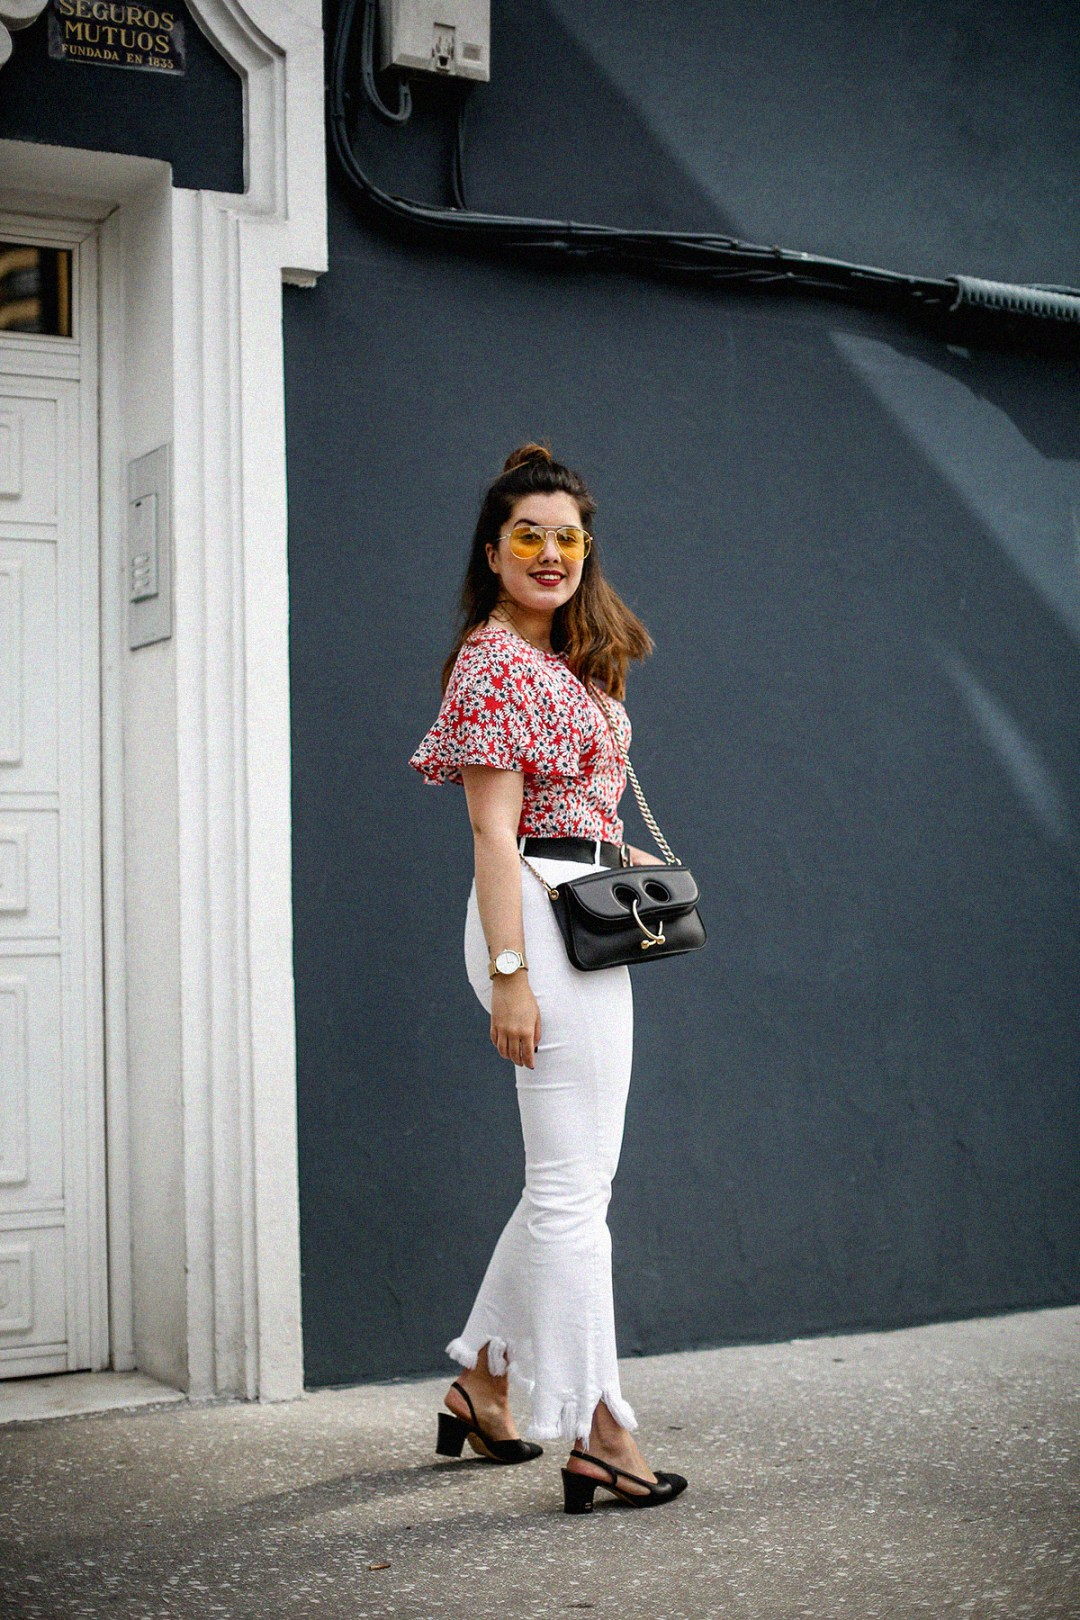 flower-top-zara-frayed-white-jeans-chanel-slingback-jw-anderson-bag-streetstyle12